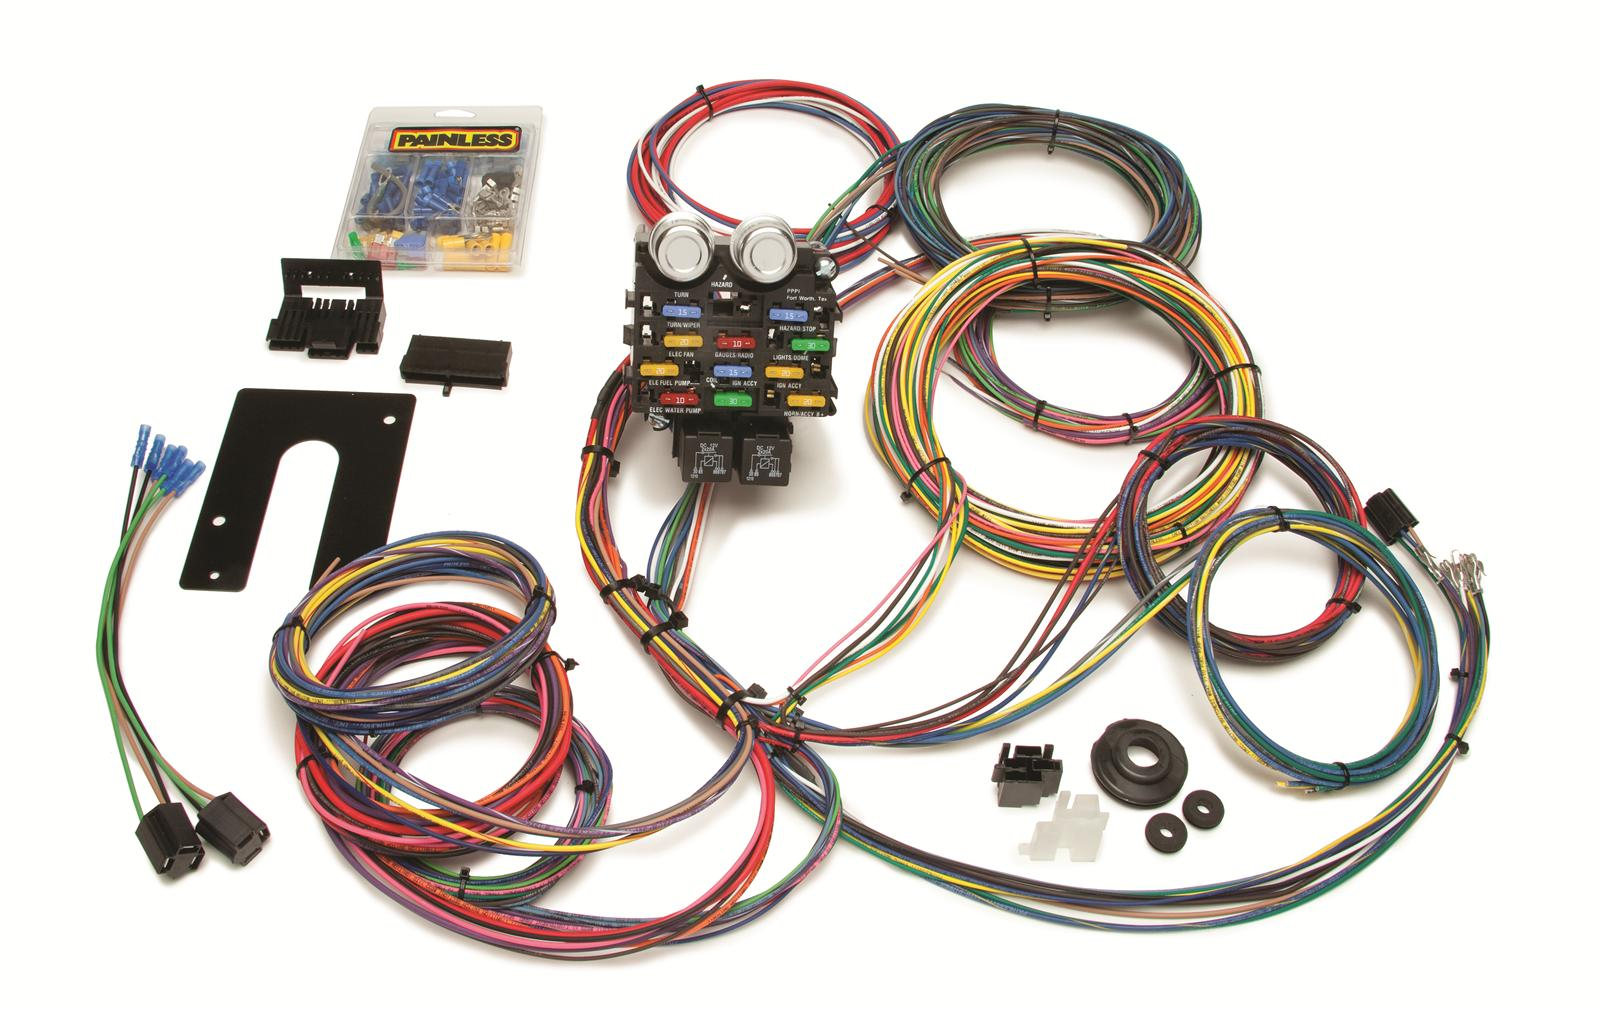 hight resolution of painless performance 21 circuit pro street chassis harnesses 50002 free shipping on orders over 99 at summit racing